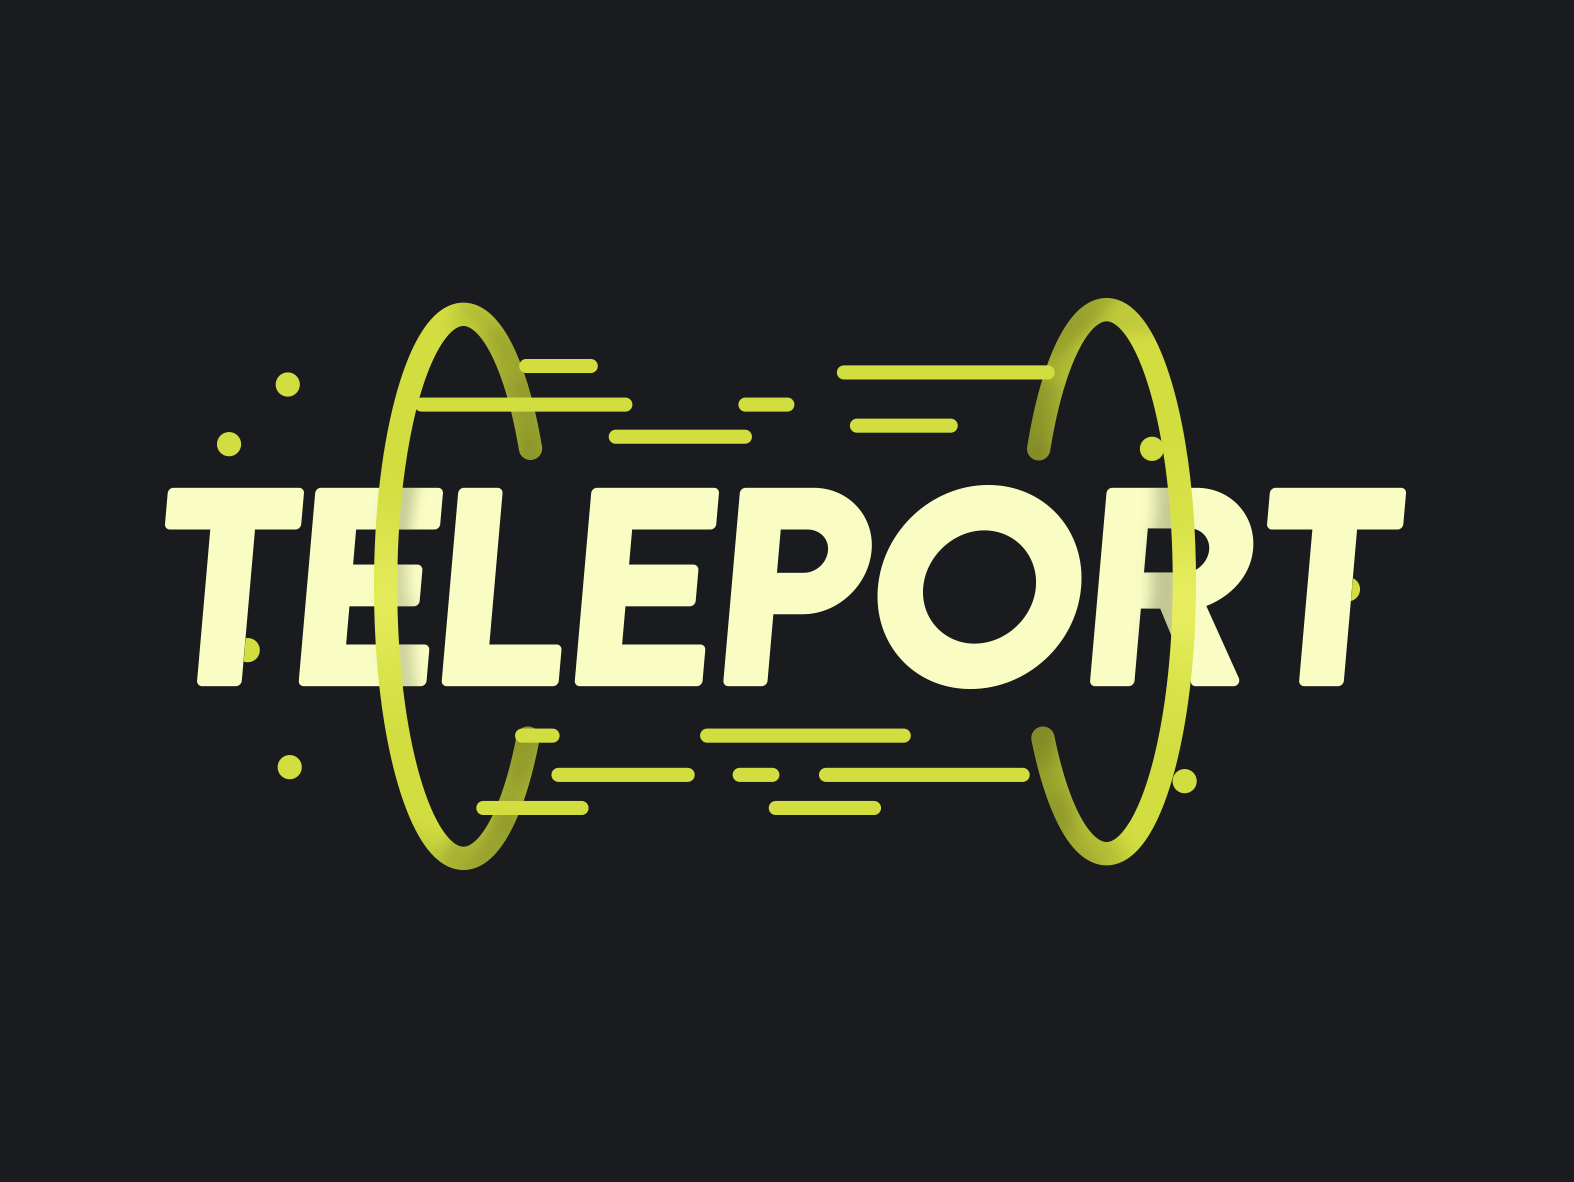 Teleport by Max Schwanger on Dribbble